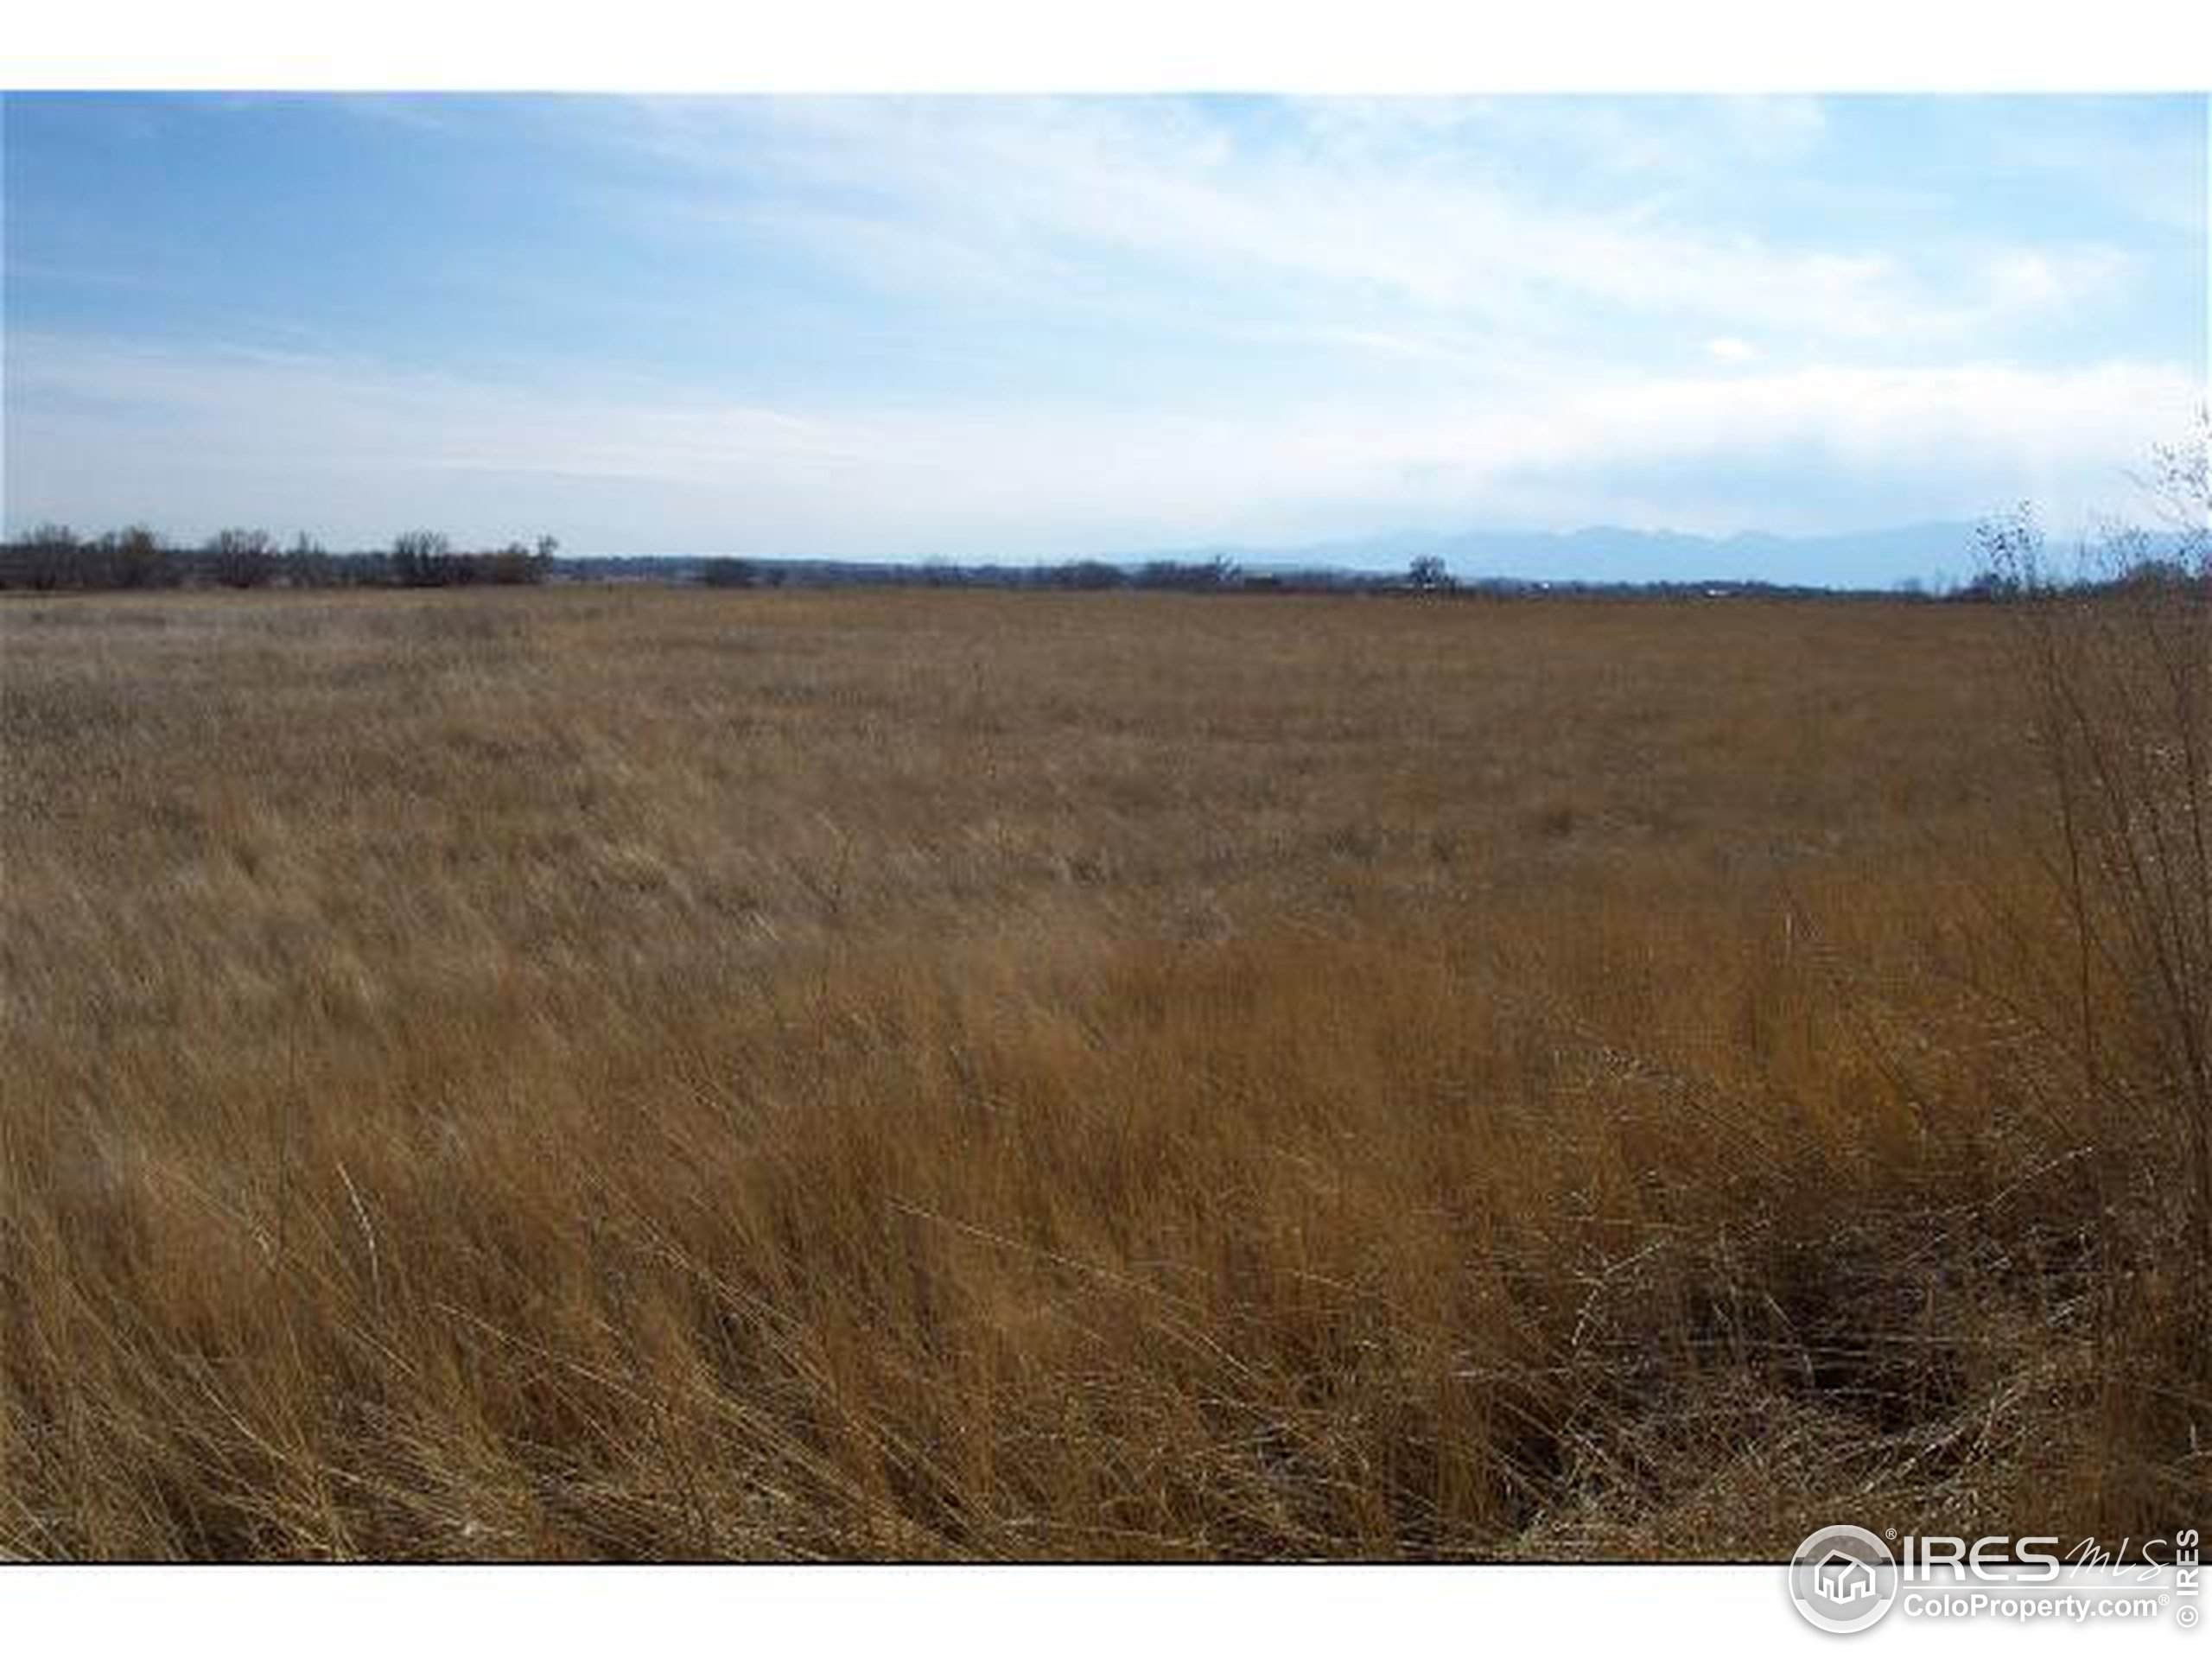 3110 N Franklin Ave, Loveland, CO 80538 (MLS #861948) :: 8z Real Estate